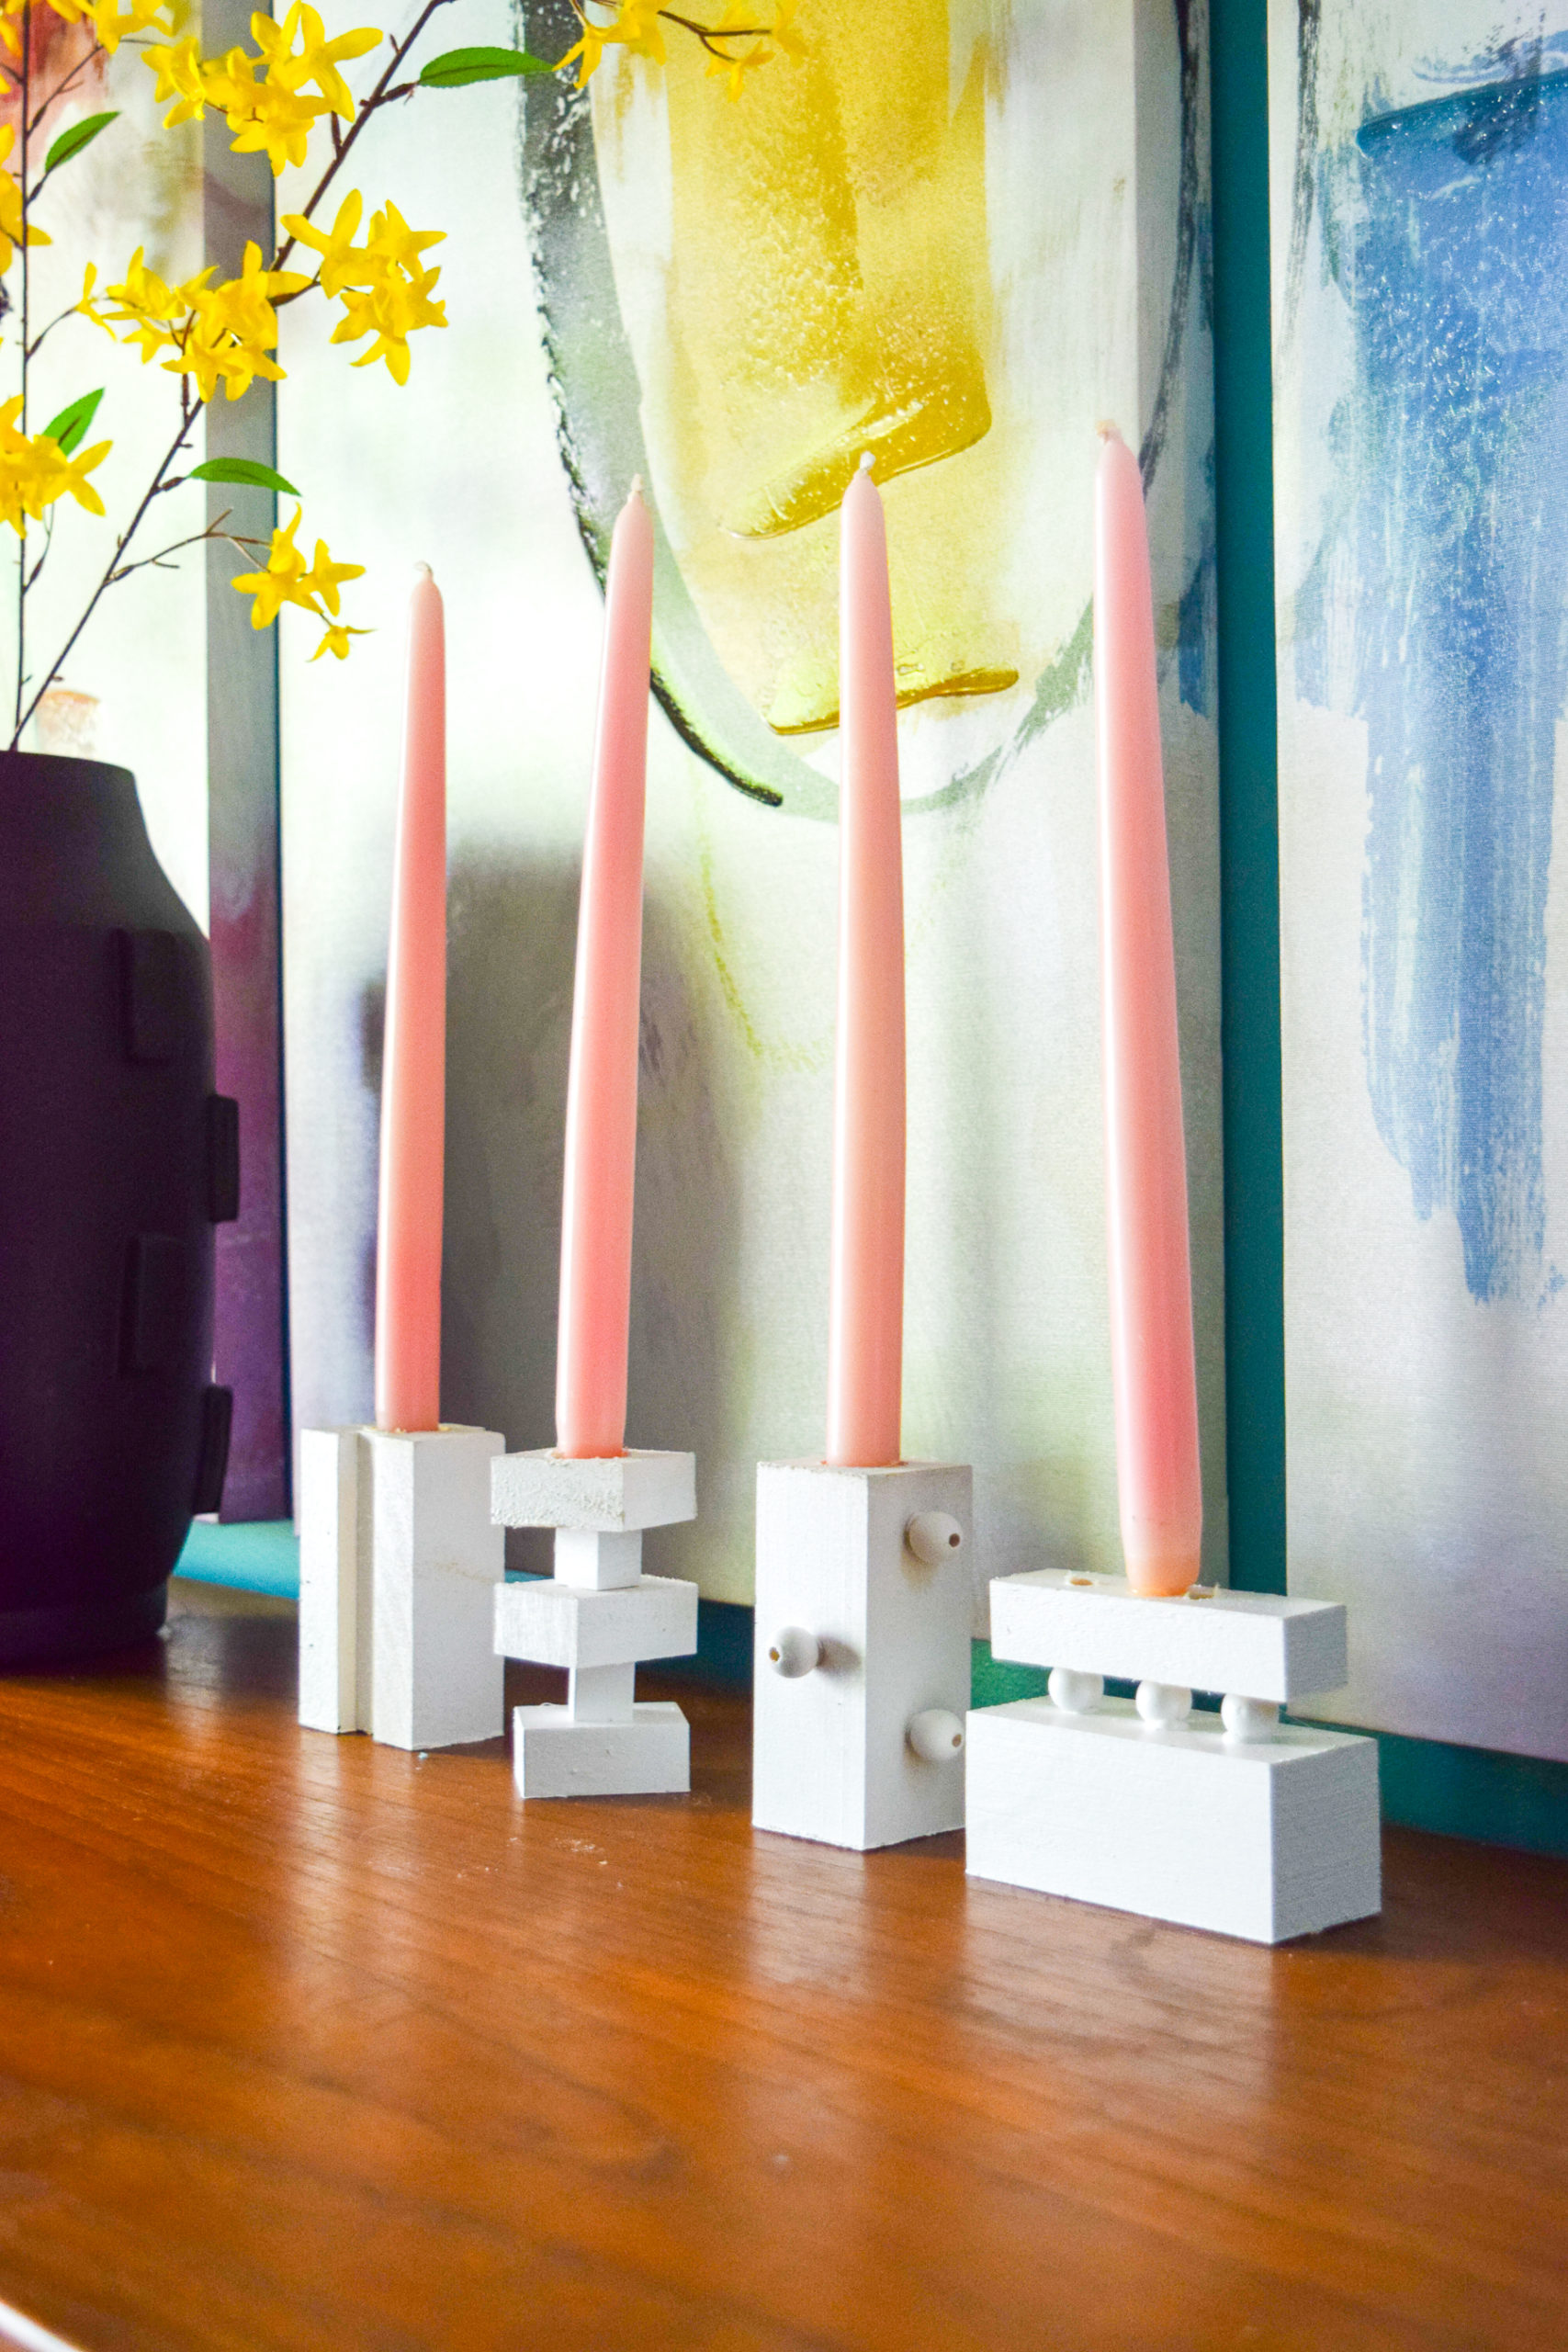 TheseDIY Modern Wood Candlestick Holders that I made add a pop of geometric modern design, and you will love how easy they were to make!